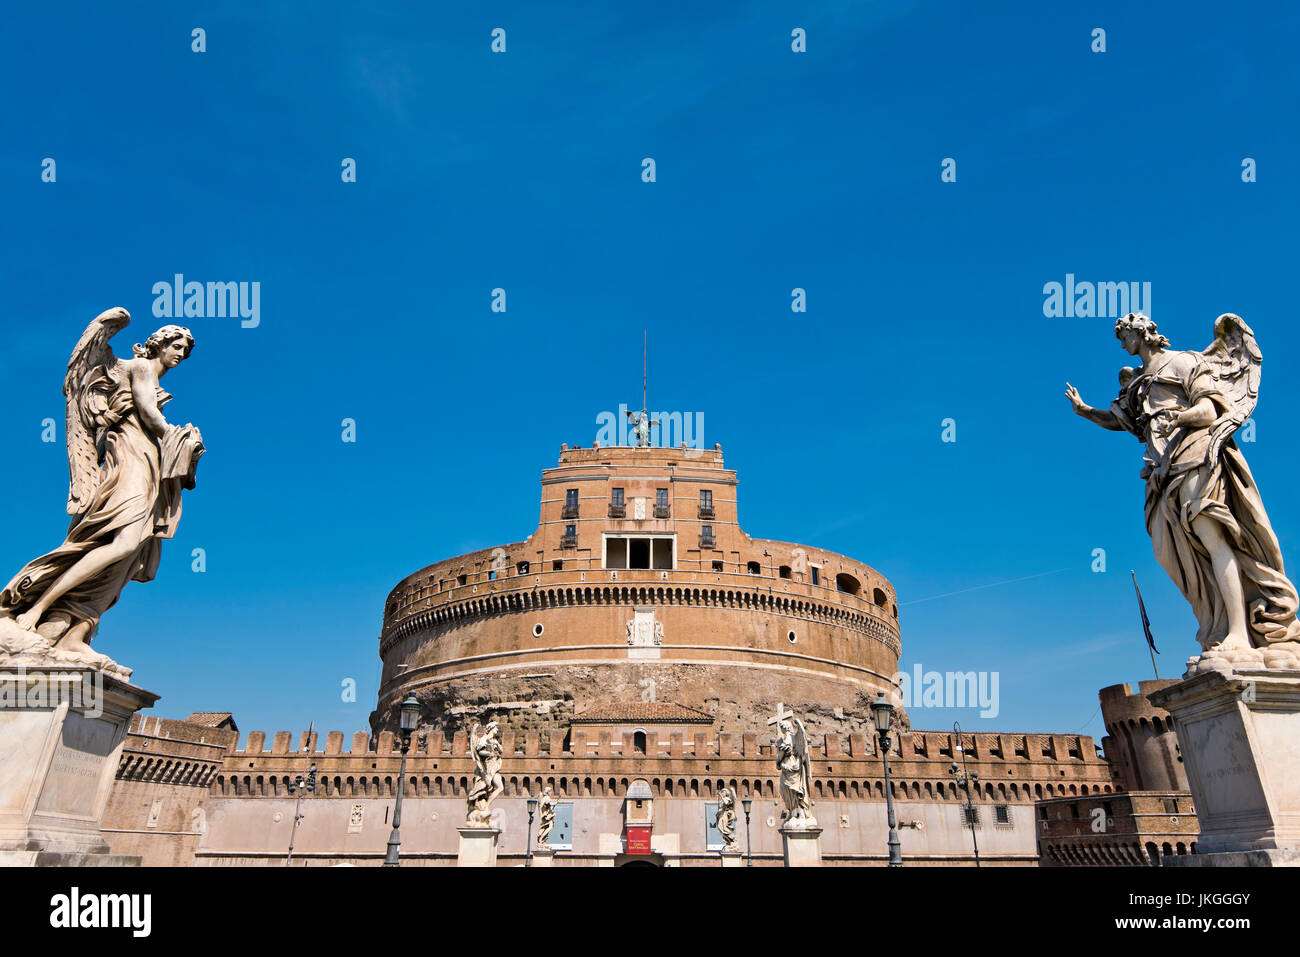 Horizontal view of the Angels on the bridge towards Castel Sant'Angelo in Rome. - Stock Image